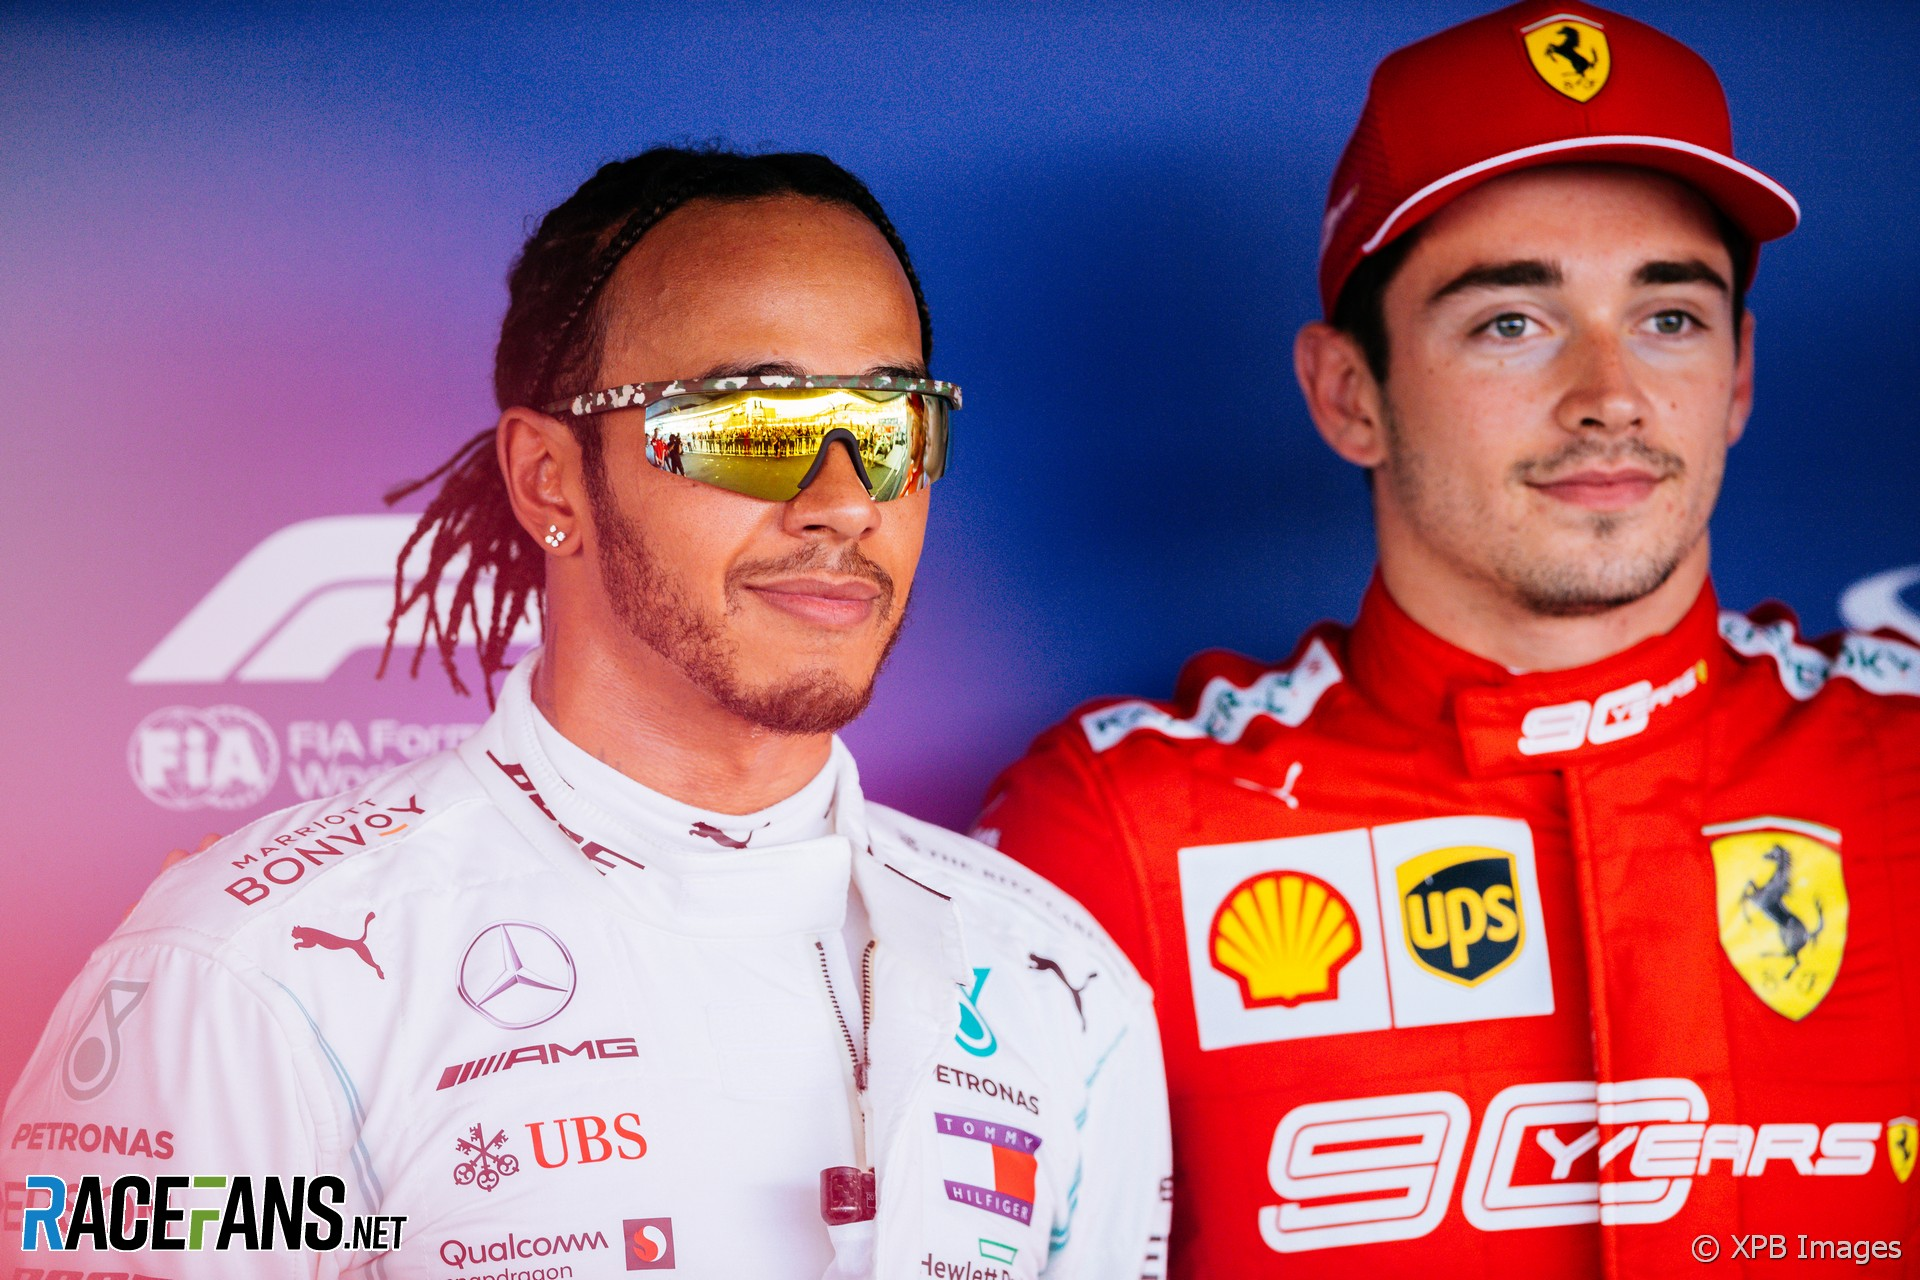 """Hamilton: Ferrari can """"blast past with the jet fuel"""" at the start"""